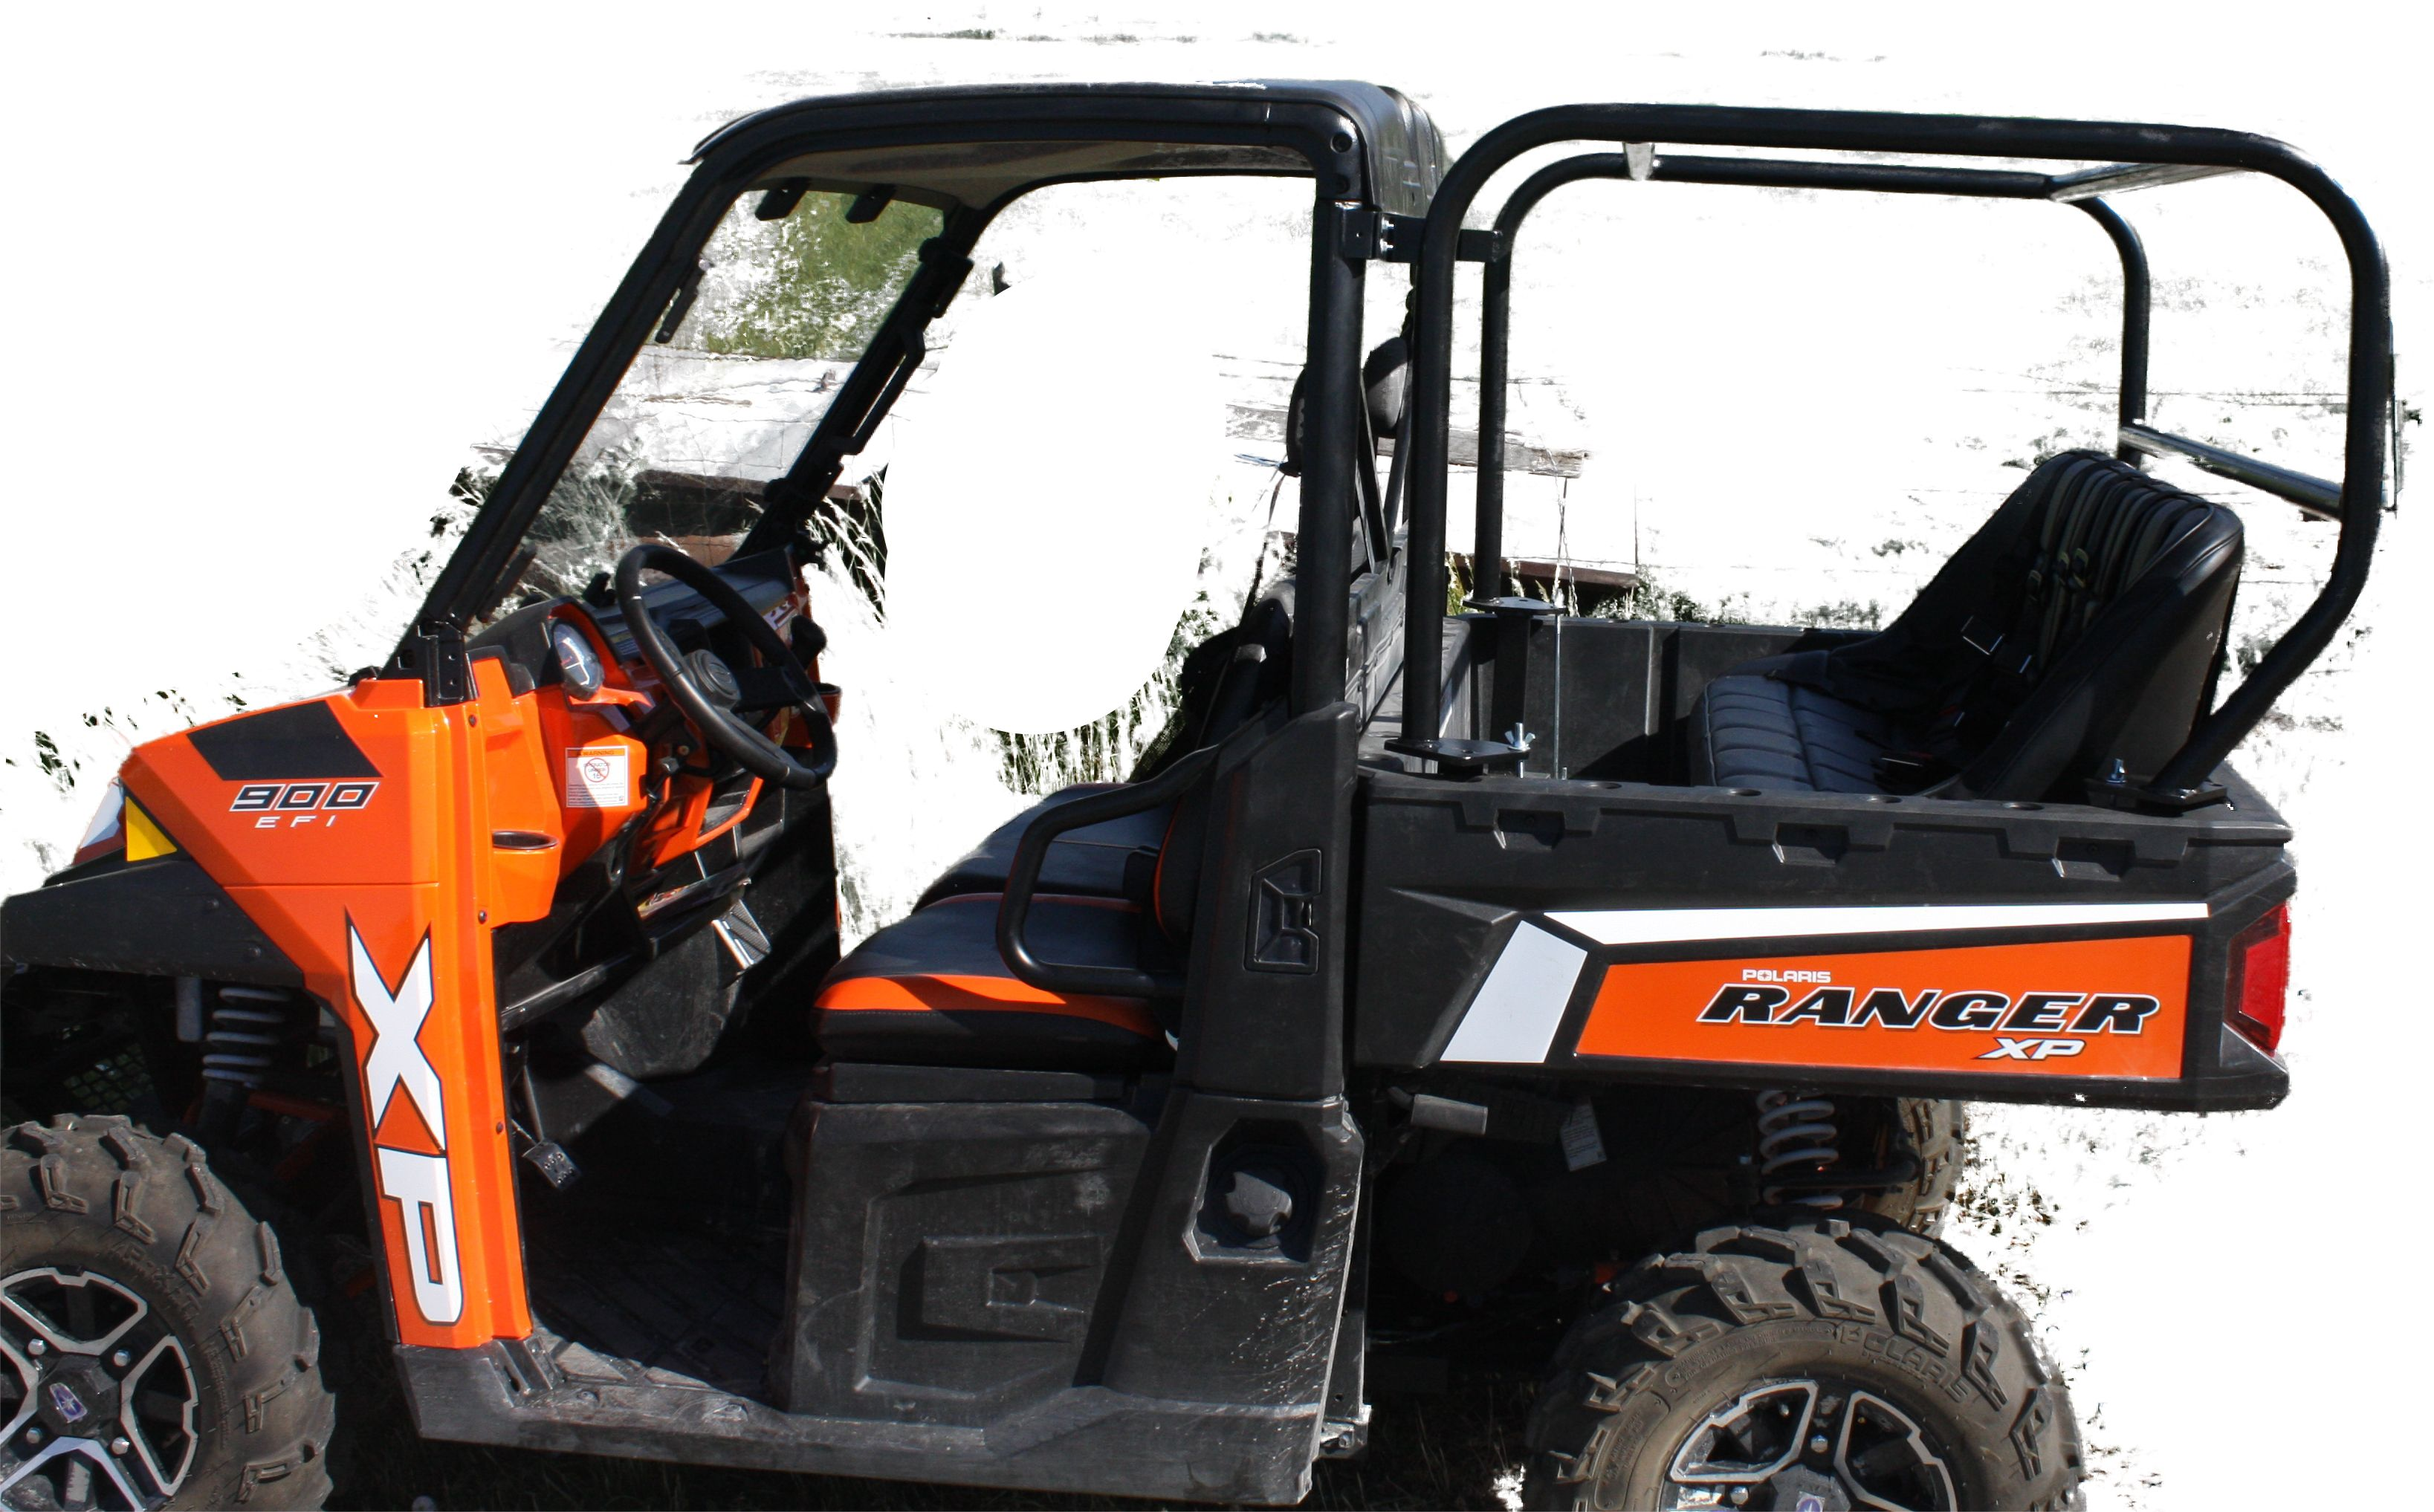 small resolution of siorfi utv polaris ranger 900xp back seat and roll cage kit this system was designed to come in and out in minutes no drilling or welding to the bed